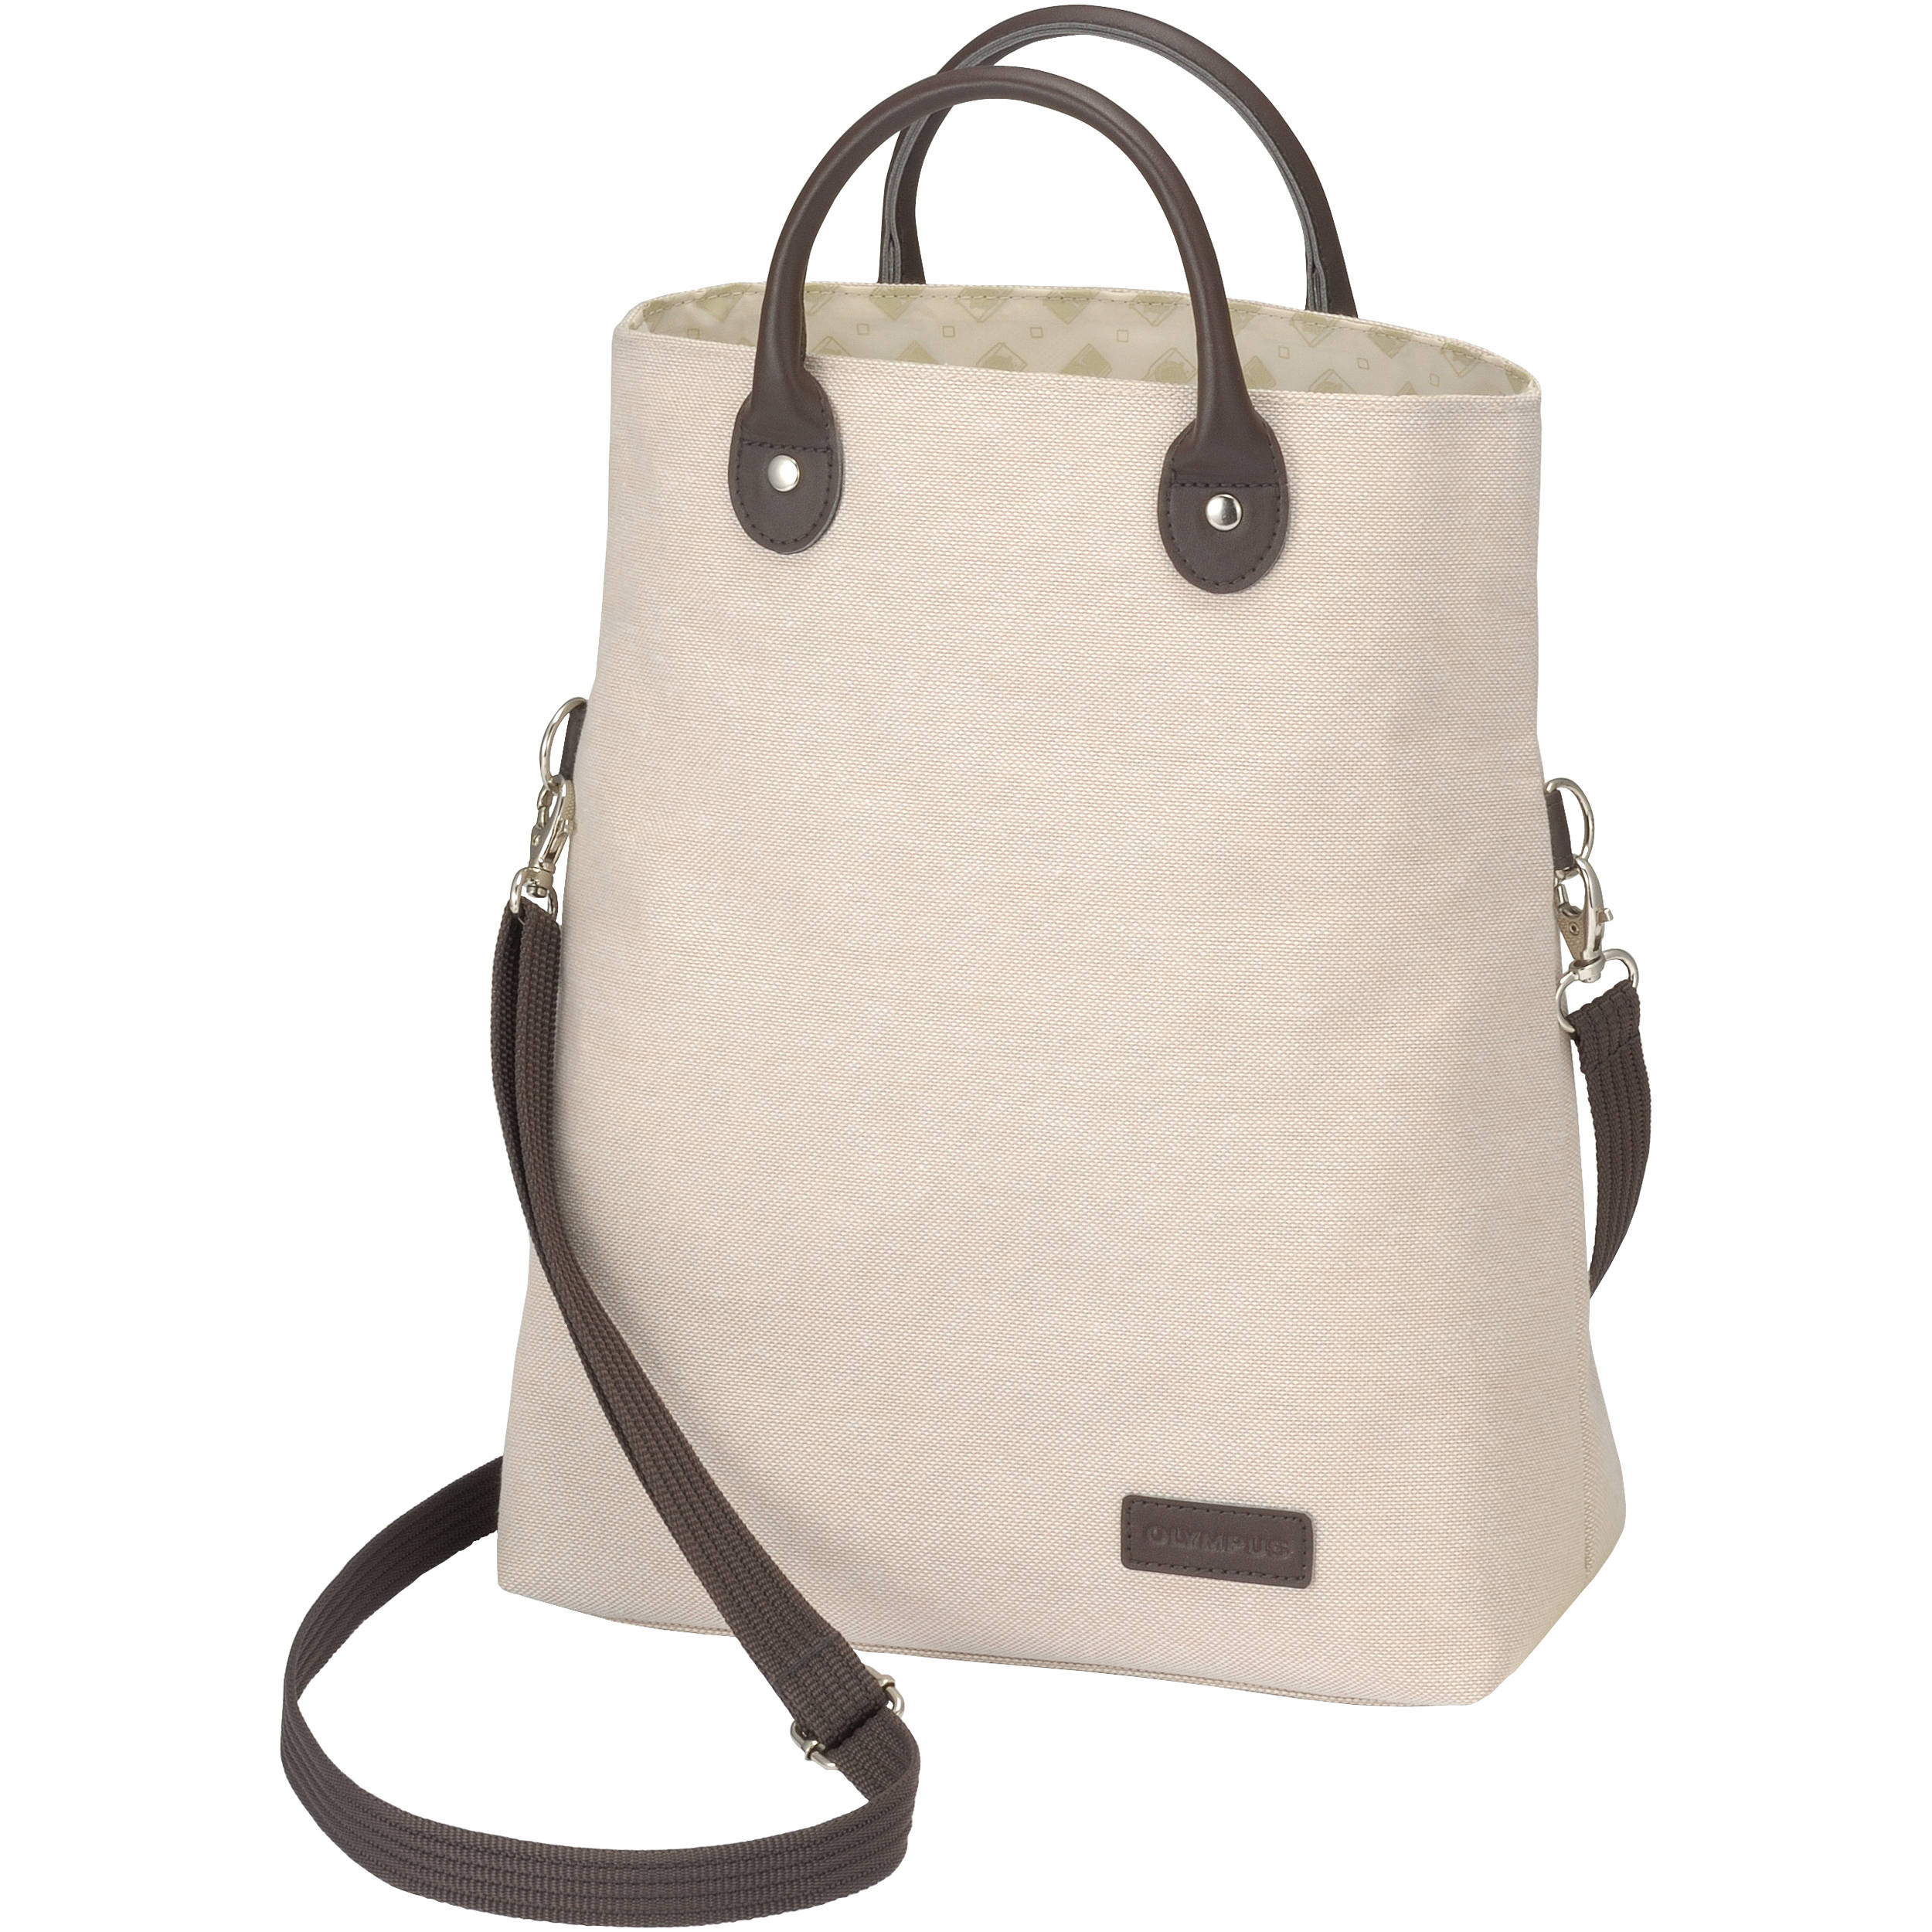 Totes Carrying Bags Bh Photo Video National Geographic Mc 2550 Medium Tote Olympus Cbg 8 Casual Camera Bag Beige